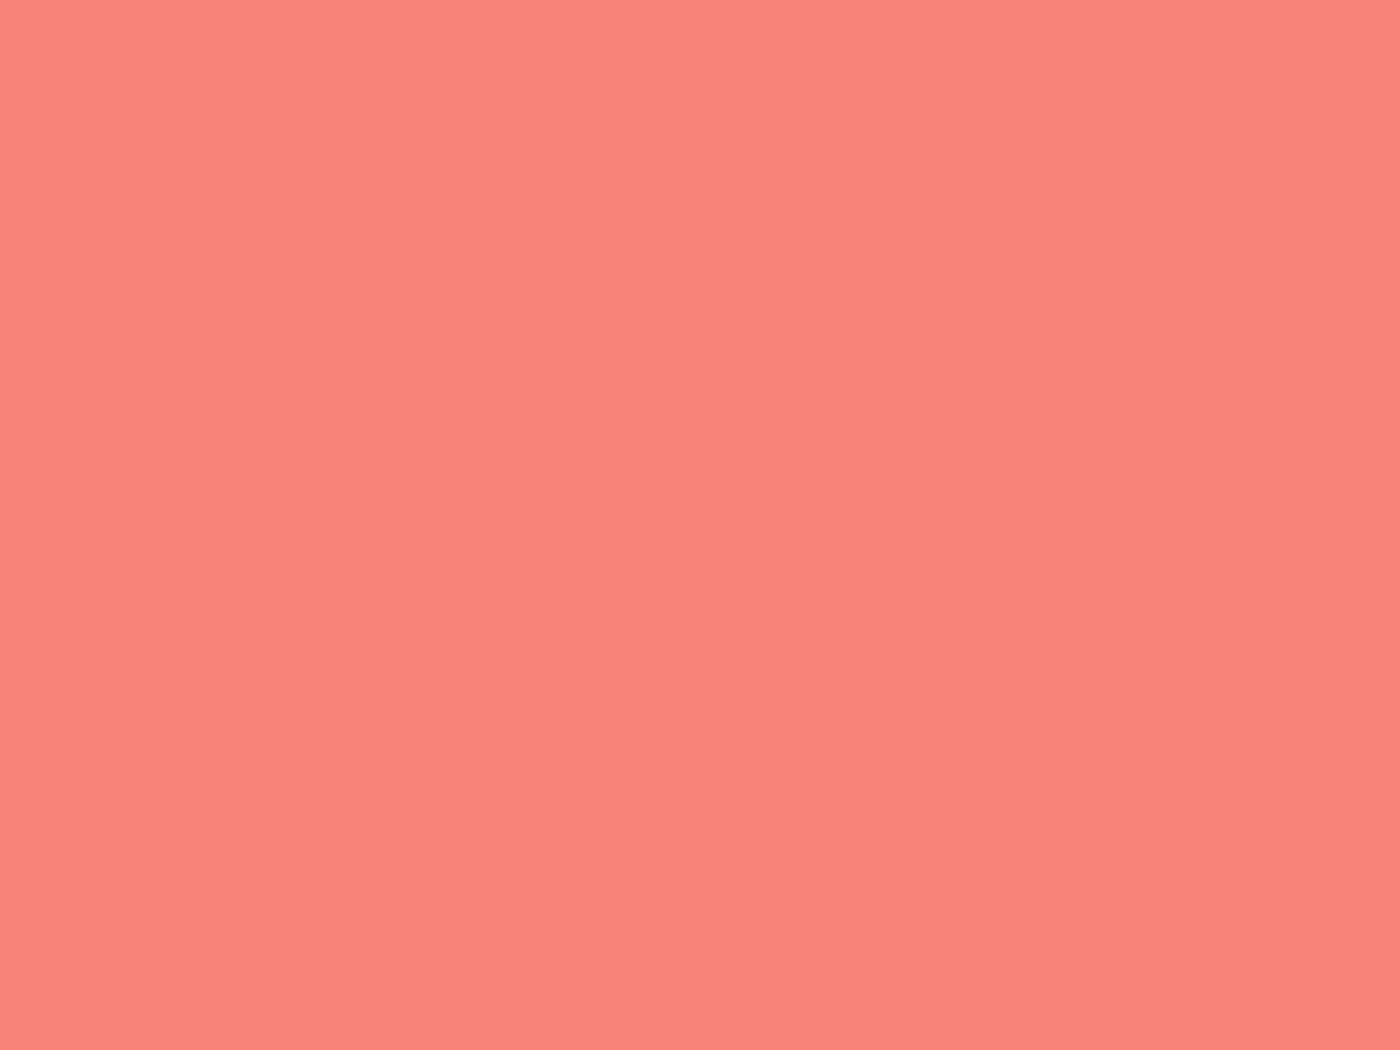 1400x1050 Congo Pink Solid Color Background